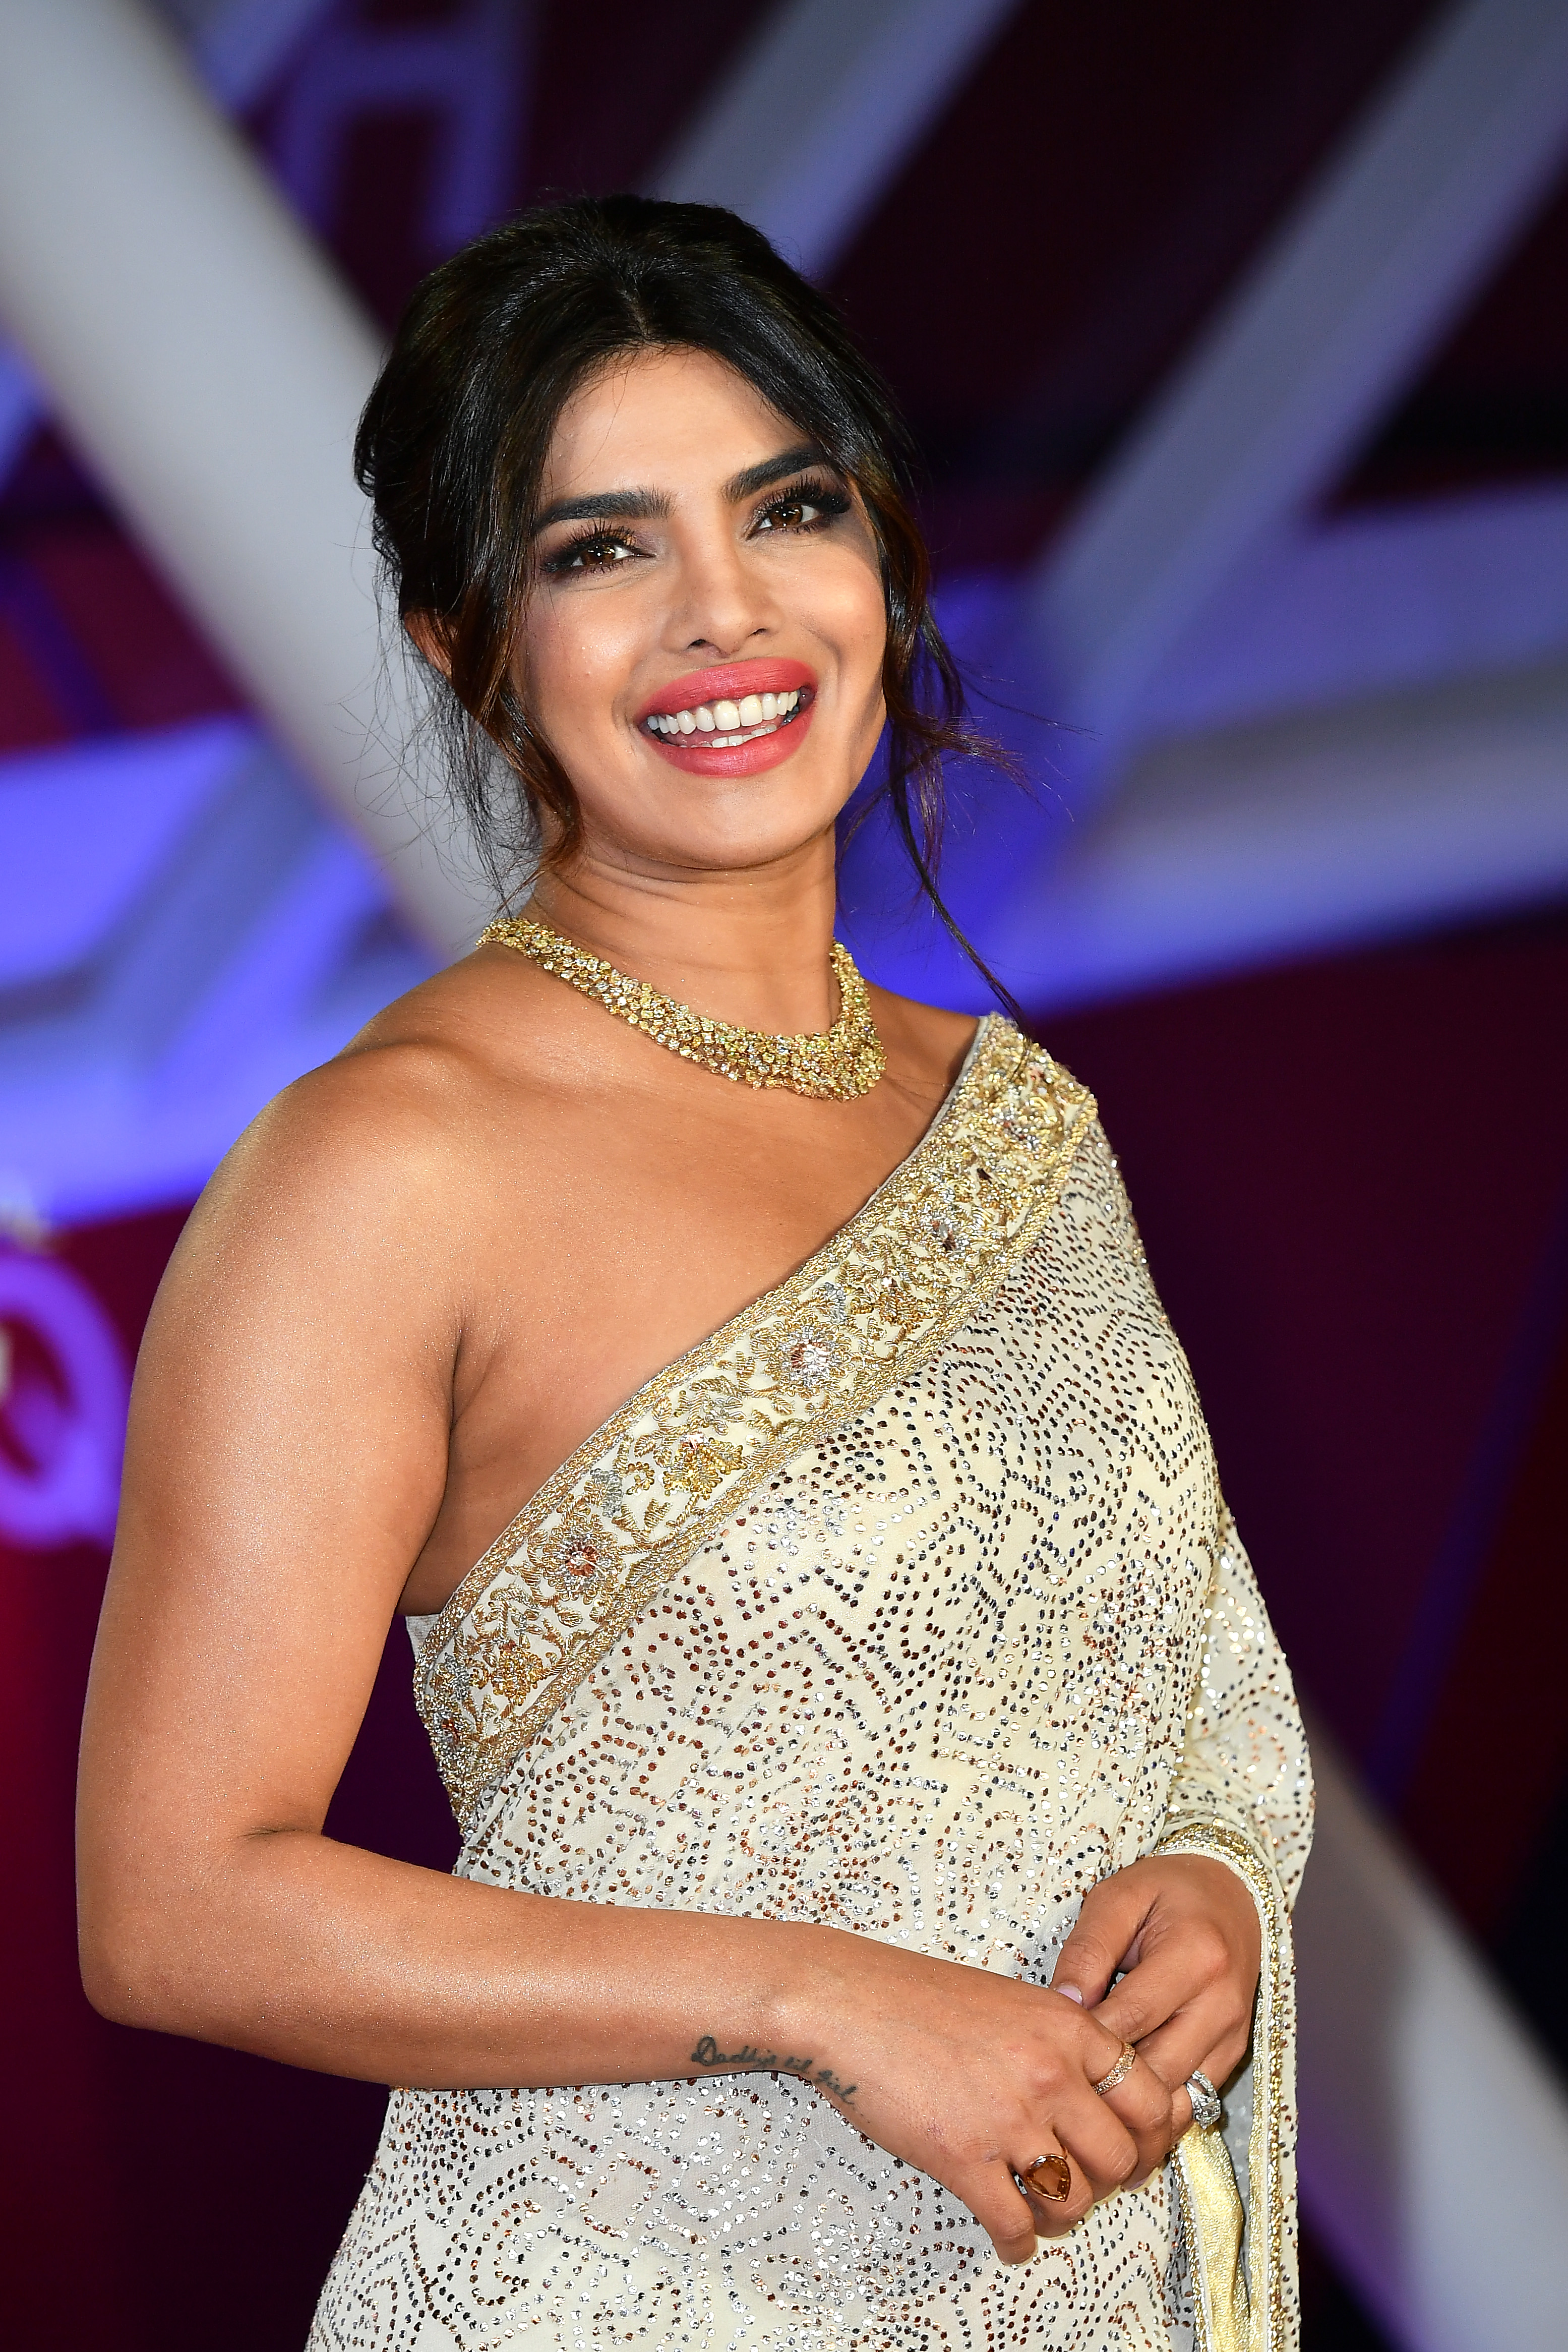 Priyanka Chopra is full of gratitude as she calls Marrakech International Film Festival tribute 'surreal'